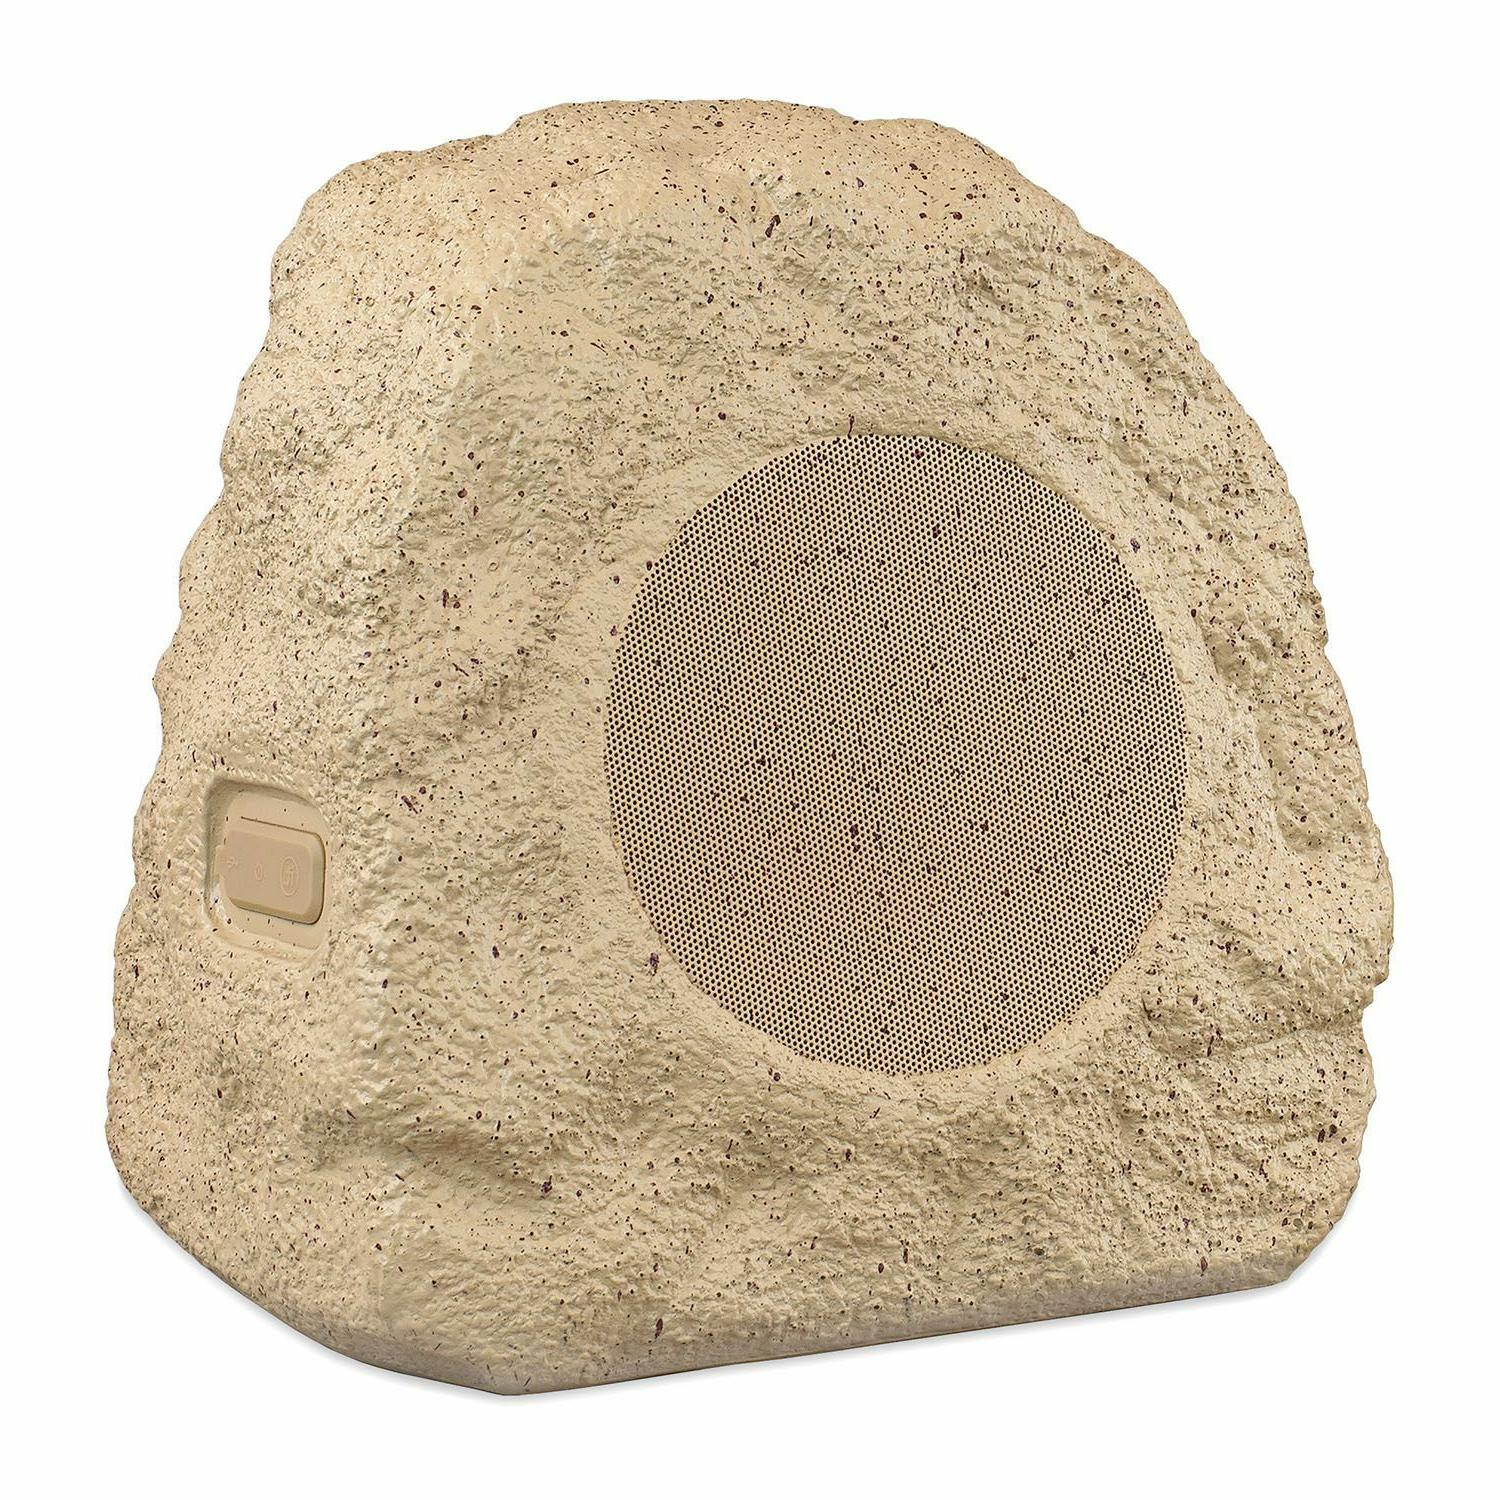 Innovative Technology Rechargeable Bluetooth Outdoor Rock Speakers, Tan